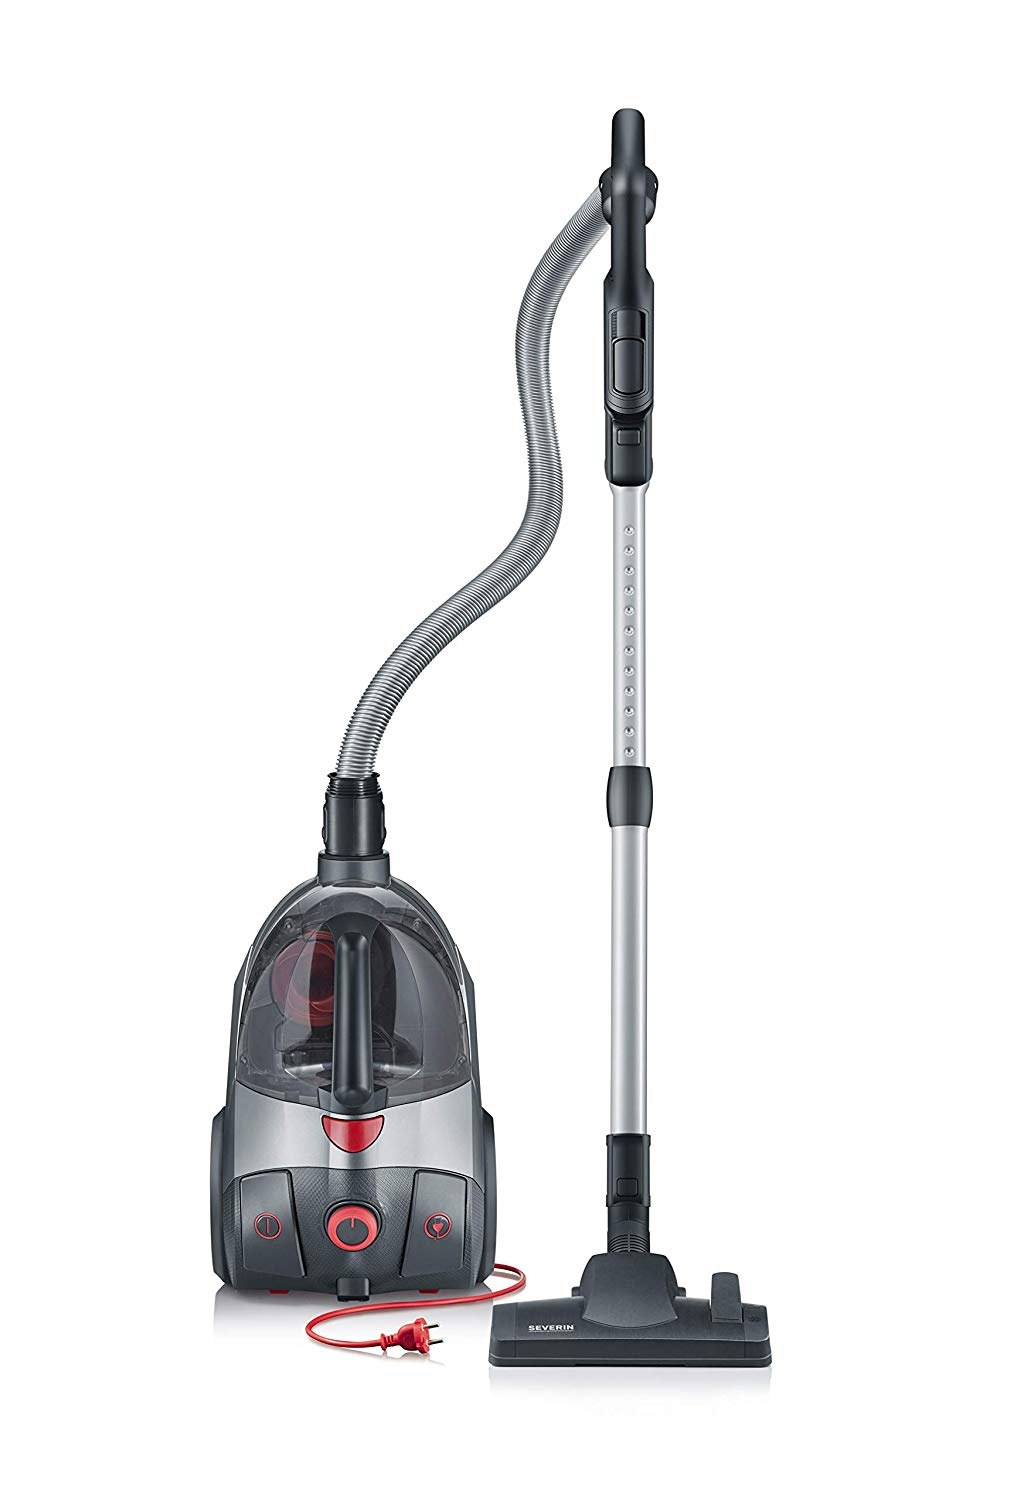 severin s 39 power extreme bagless canister vacuum cleaner midnight black. Black Bedroom Furniture Sets. Home Design Ideas